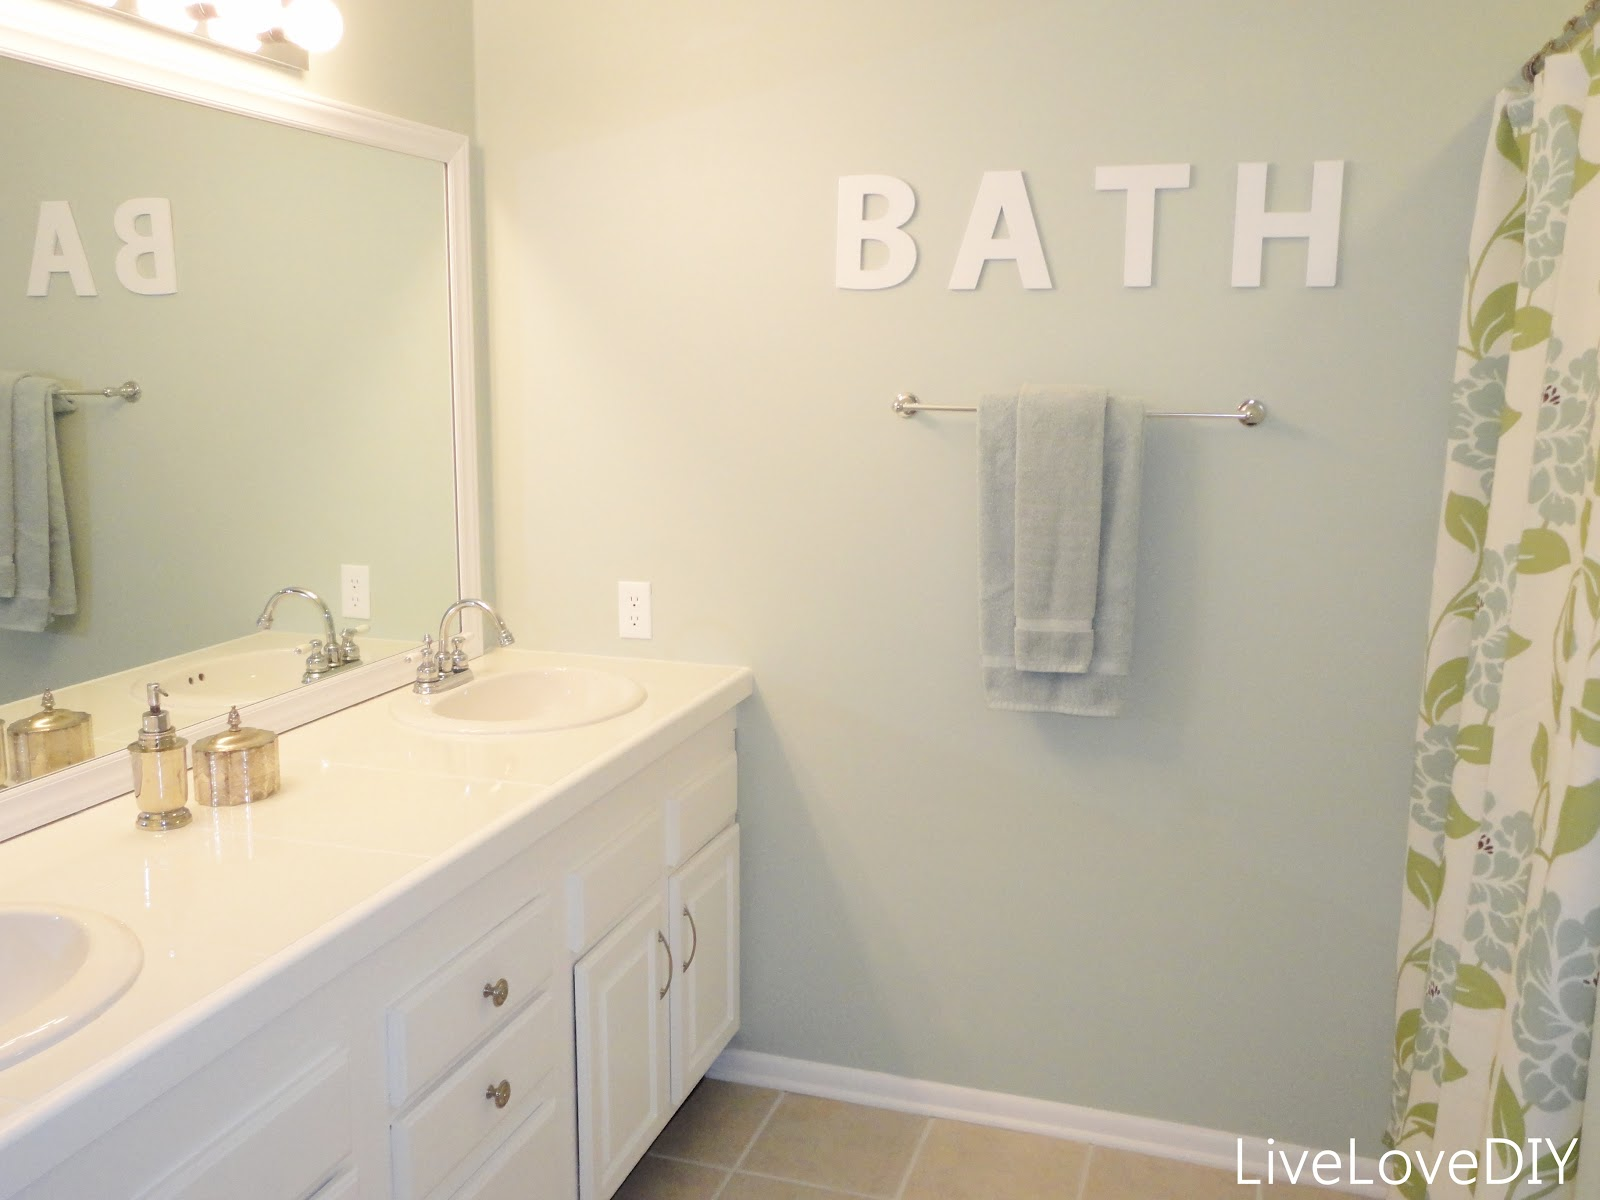 Bathroom Makeover Paint Tiles livelovediy: easy diy ideas for updating your bathroom!